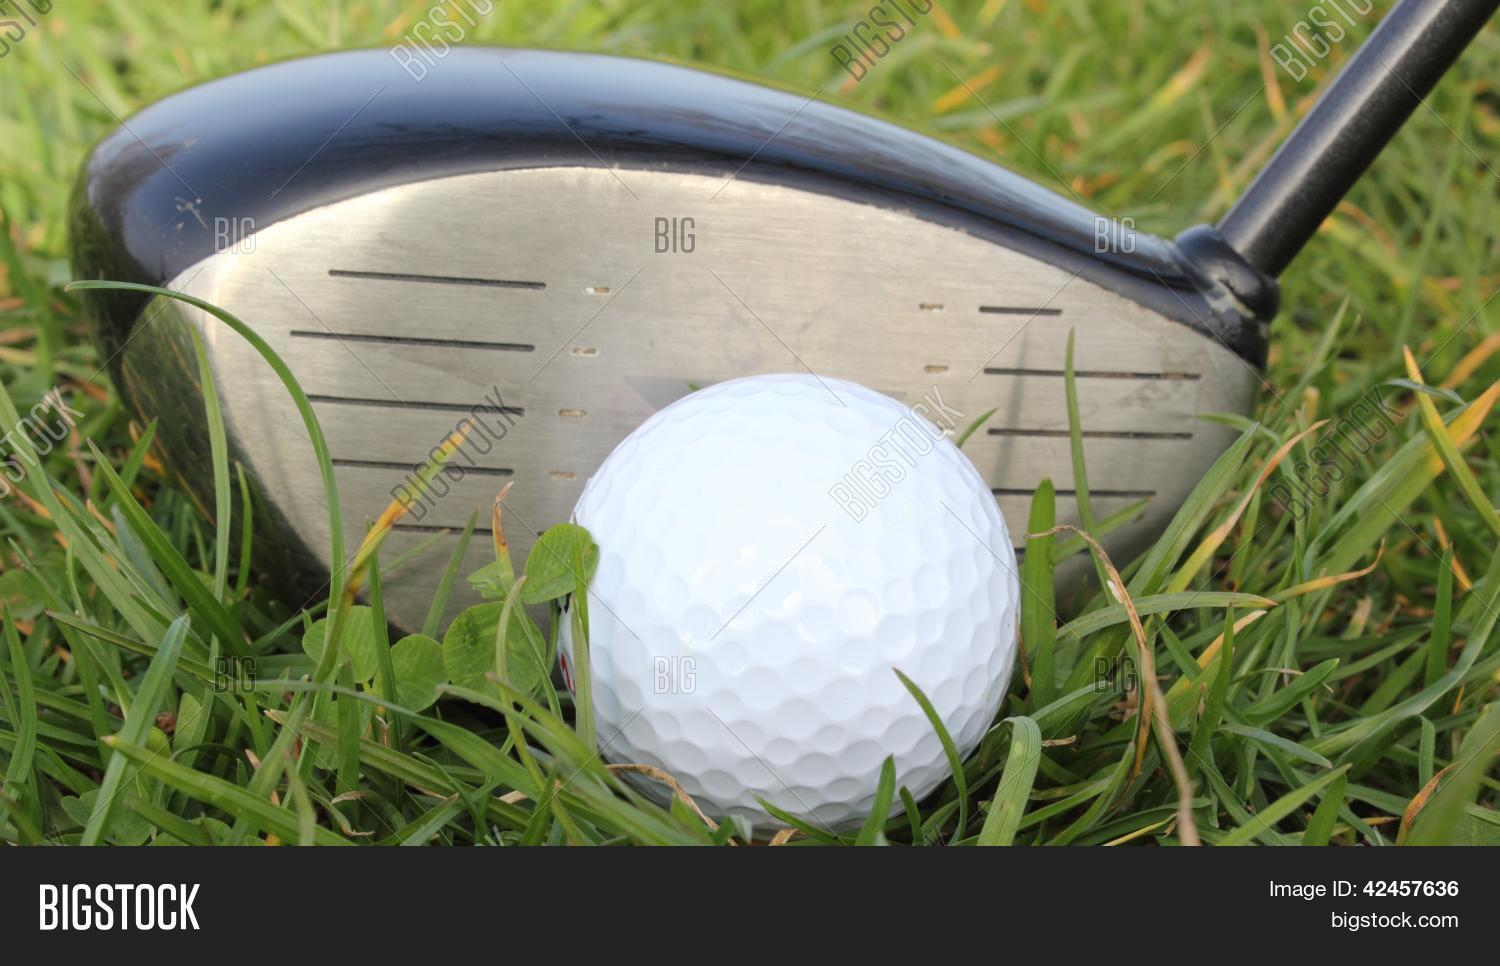 achieve,achievement,action,active,activity,aim,aiming,background,balance,ball,beautiful,begin,birdie,bright,close,club,compete,competition,competitive,concept,conceptual,country,course,cut,day,design,detail,dimples,divot,drive,driven,driver,eagle,exercise,expense,expensive,fairway,field,flag,fore,form,four,friendly,frustrate,frustrating,frustration,fun,game,golf,golfball,golfcourse,golfer,golfing,grass,green,greenery,grooves,handicap,hard,hit,hobby,hole,holiday,invitation,invitational,lawn,leisure,life,lifestyle,links,long,natural,nature,outdoors,par,peg,pitch,pitching,play,player,playing,practice,ready,recreation,relax,relaxation,relaxed,resort,retire,retirement,rough,round,scenery,scenic,score,scorecard,senior,shadow,skill,speed,sports,start,success,successful,summer,sweet,swing,tee,vacation,walk,white,wood